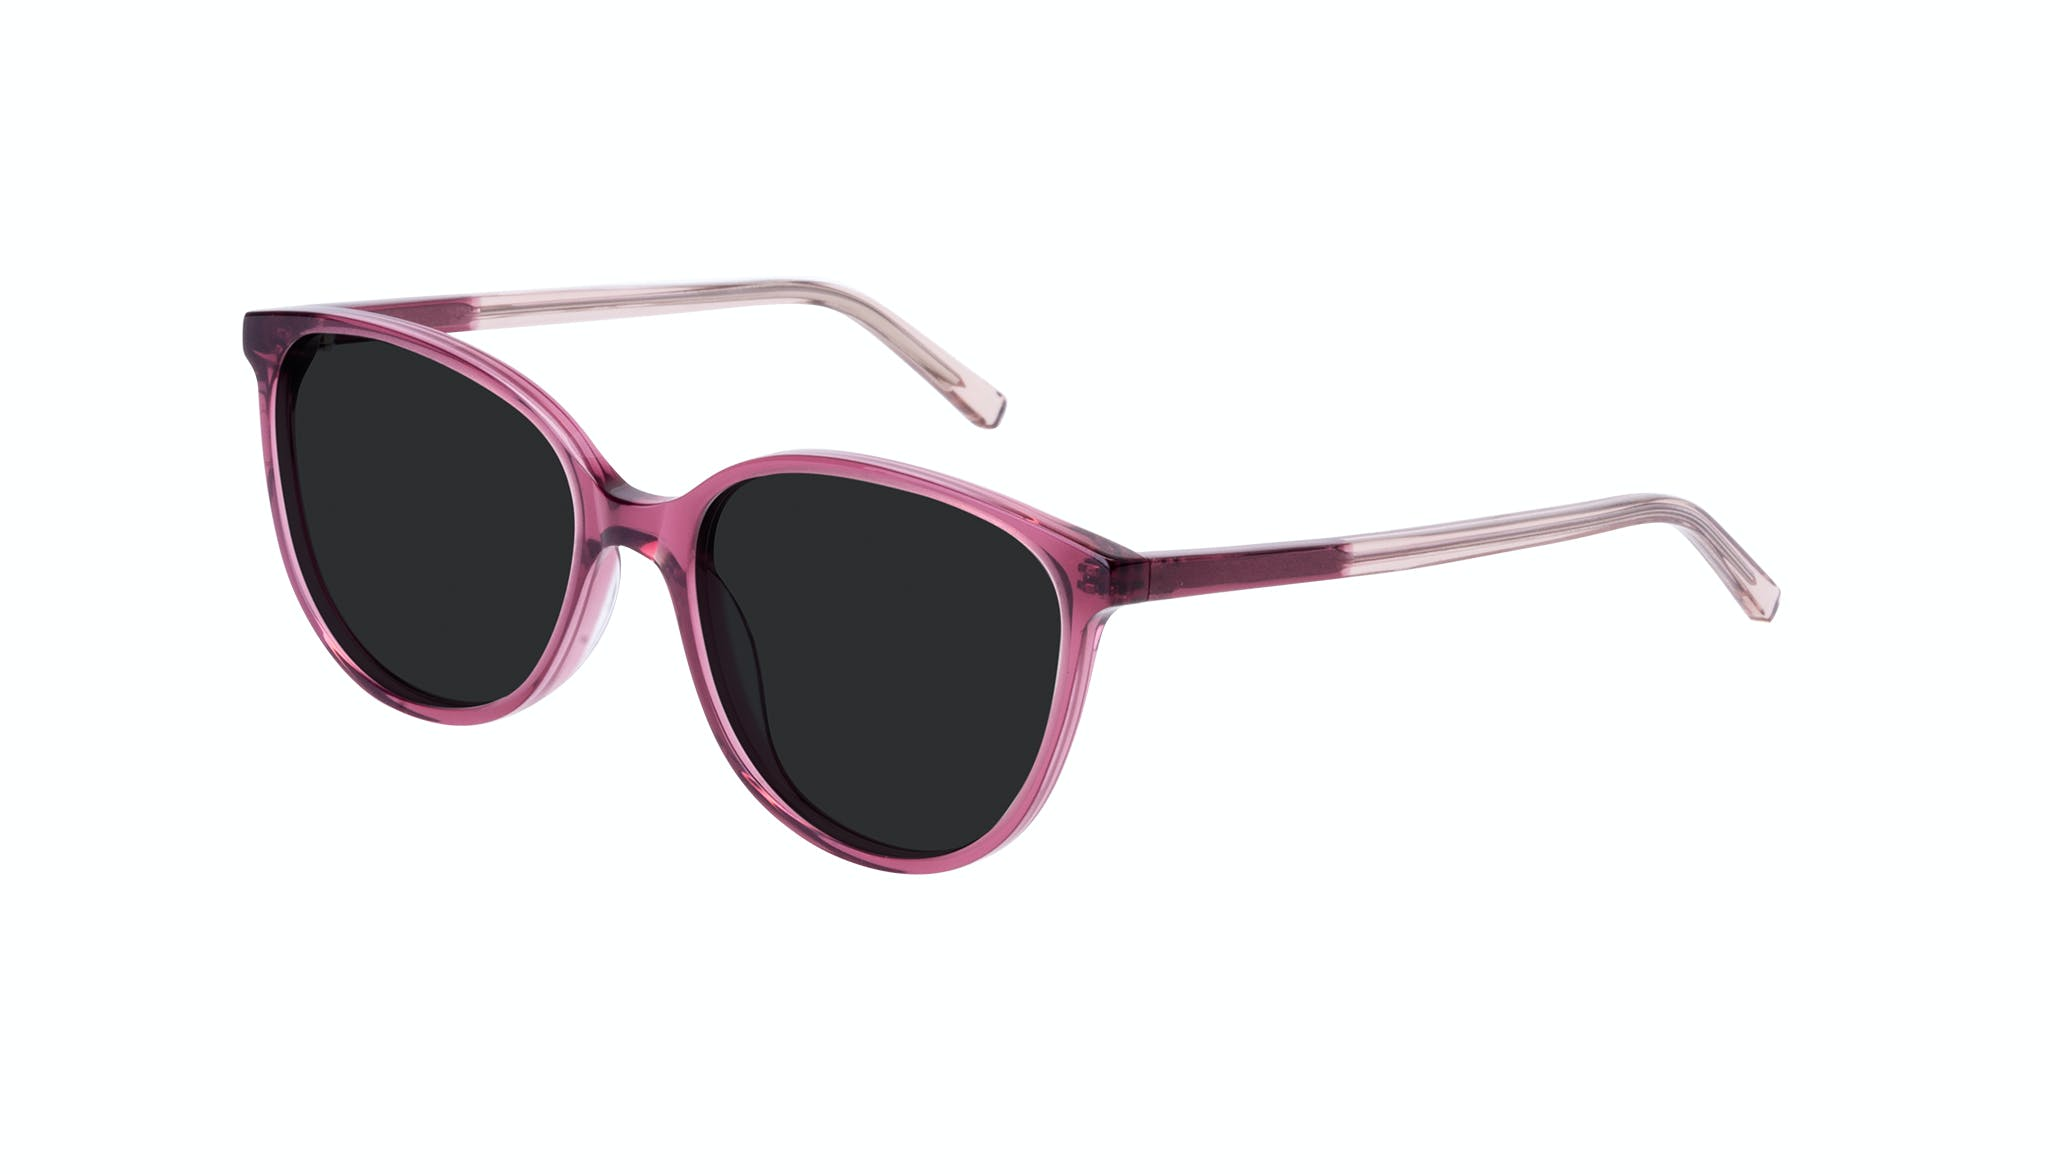 Affordable Fashion Glasses Round Sunglasses Women Imagine Petite Berry Tilt